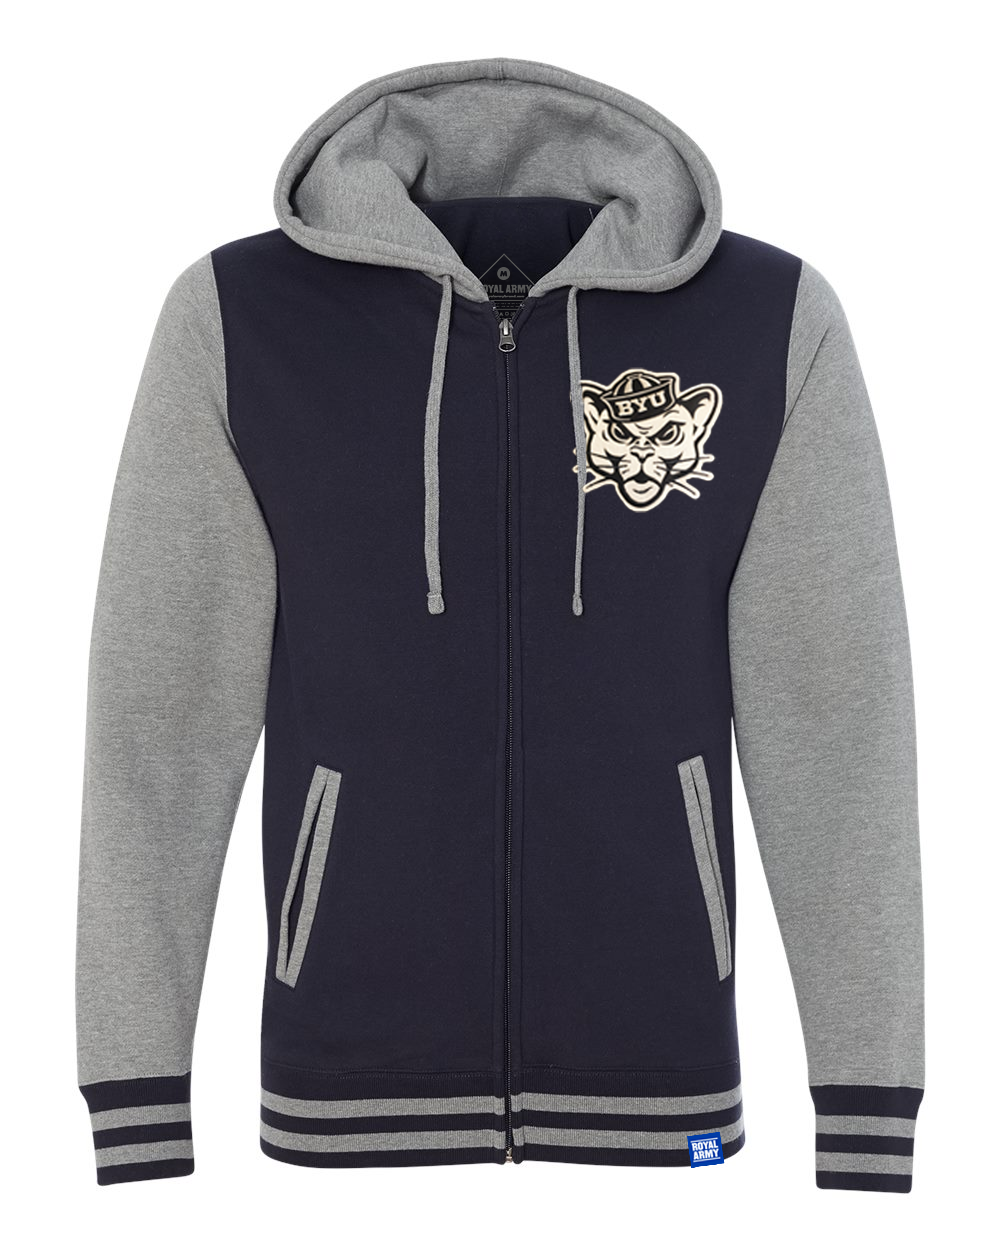 Varsity Hoodie Navy and Gray with Sailor Cougar Tackle Twill Patch